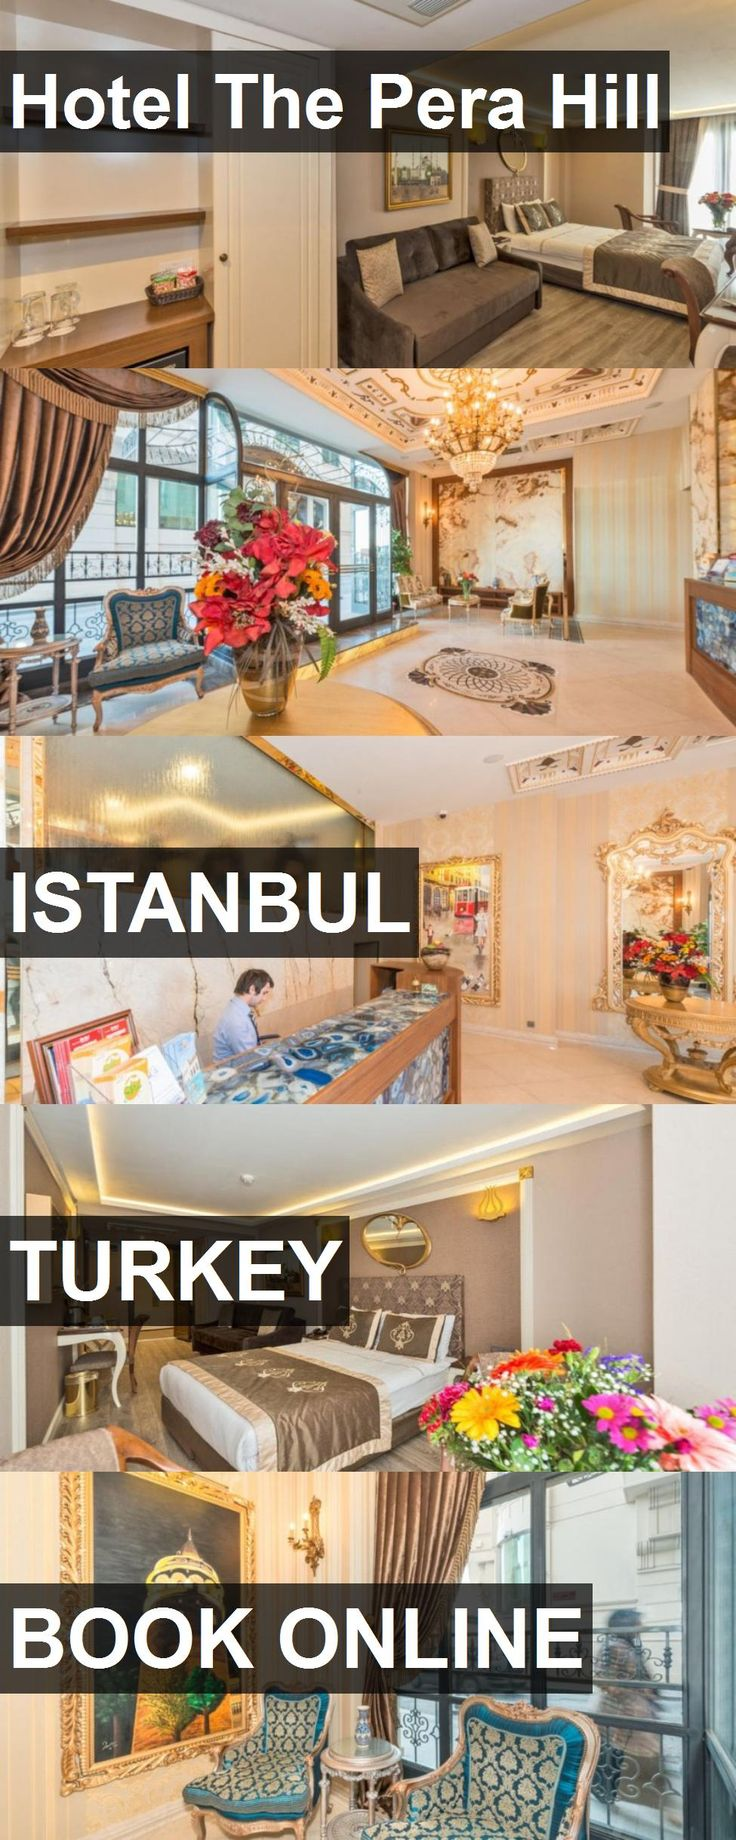 Hotel The Pera Hill in Istanbul, Turkey. For more information, photos, reviews and best prices please follow the link. #Turkey #Istanbul #travel #vacation #hotel